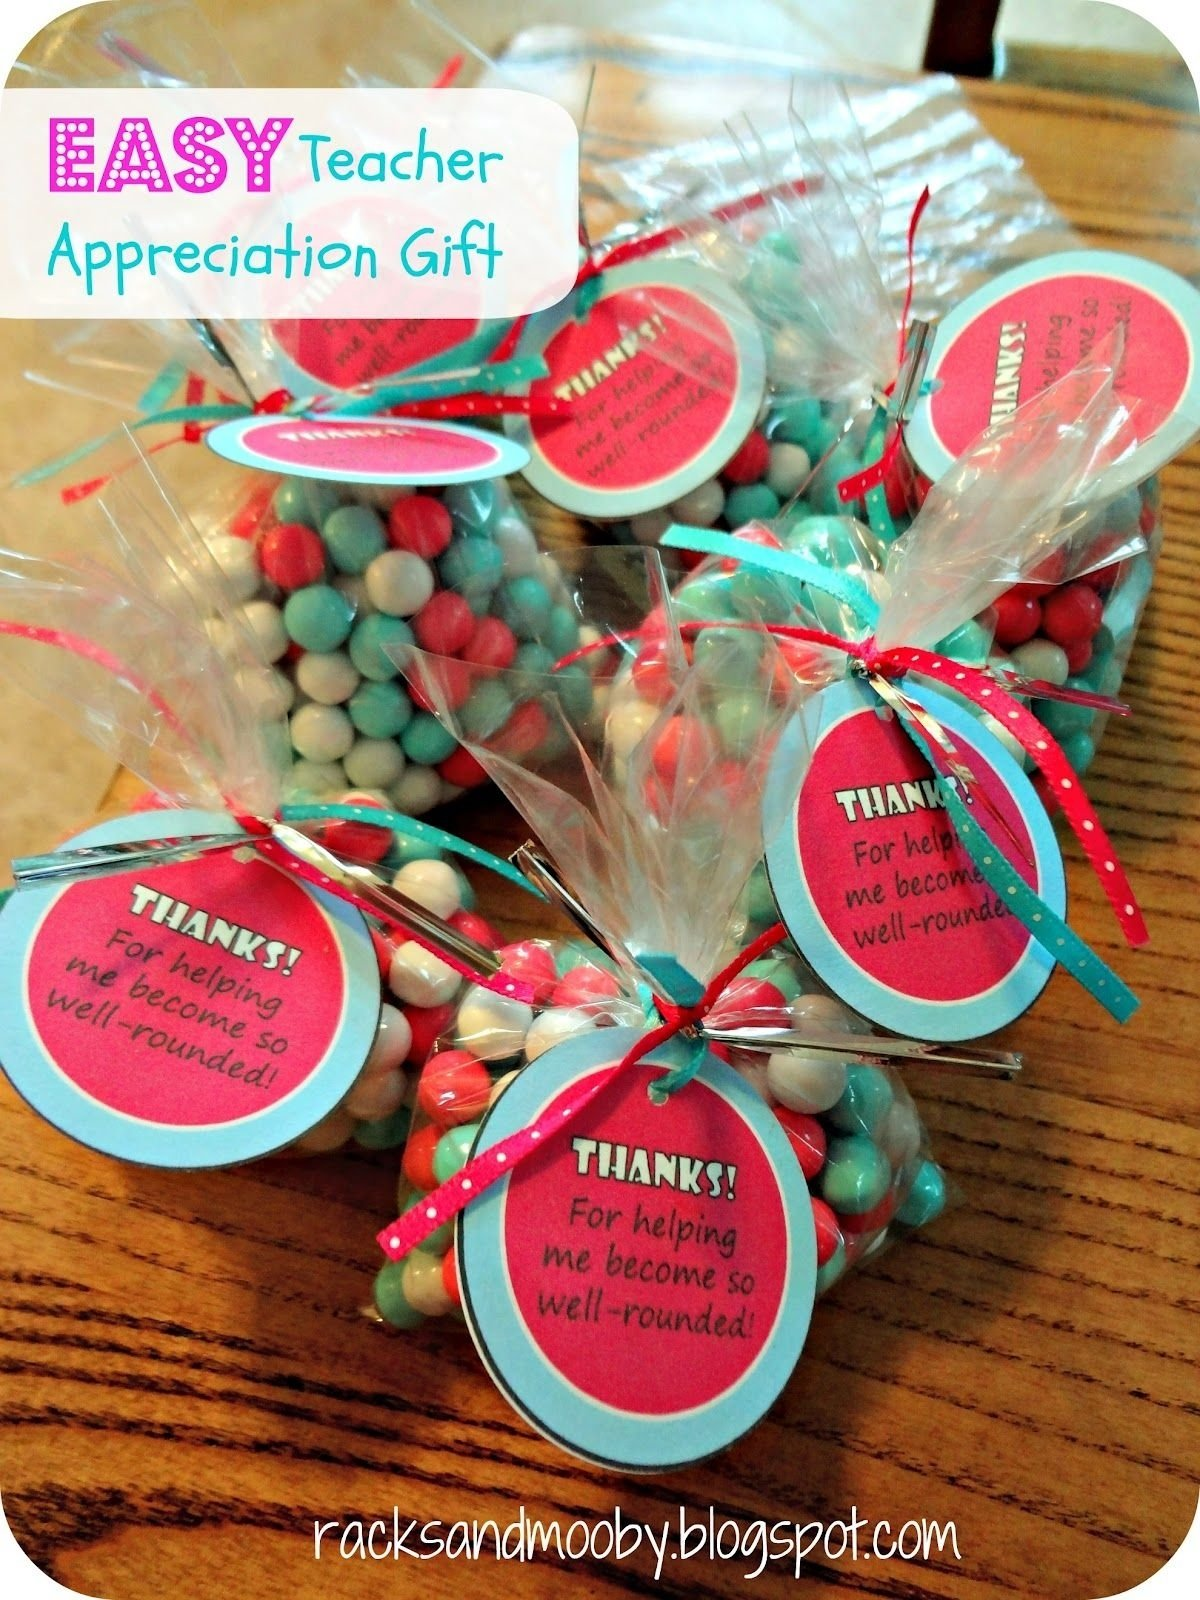 inexpensive and easy teacher appreciation gifts. super cute & super